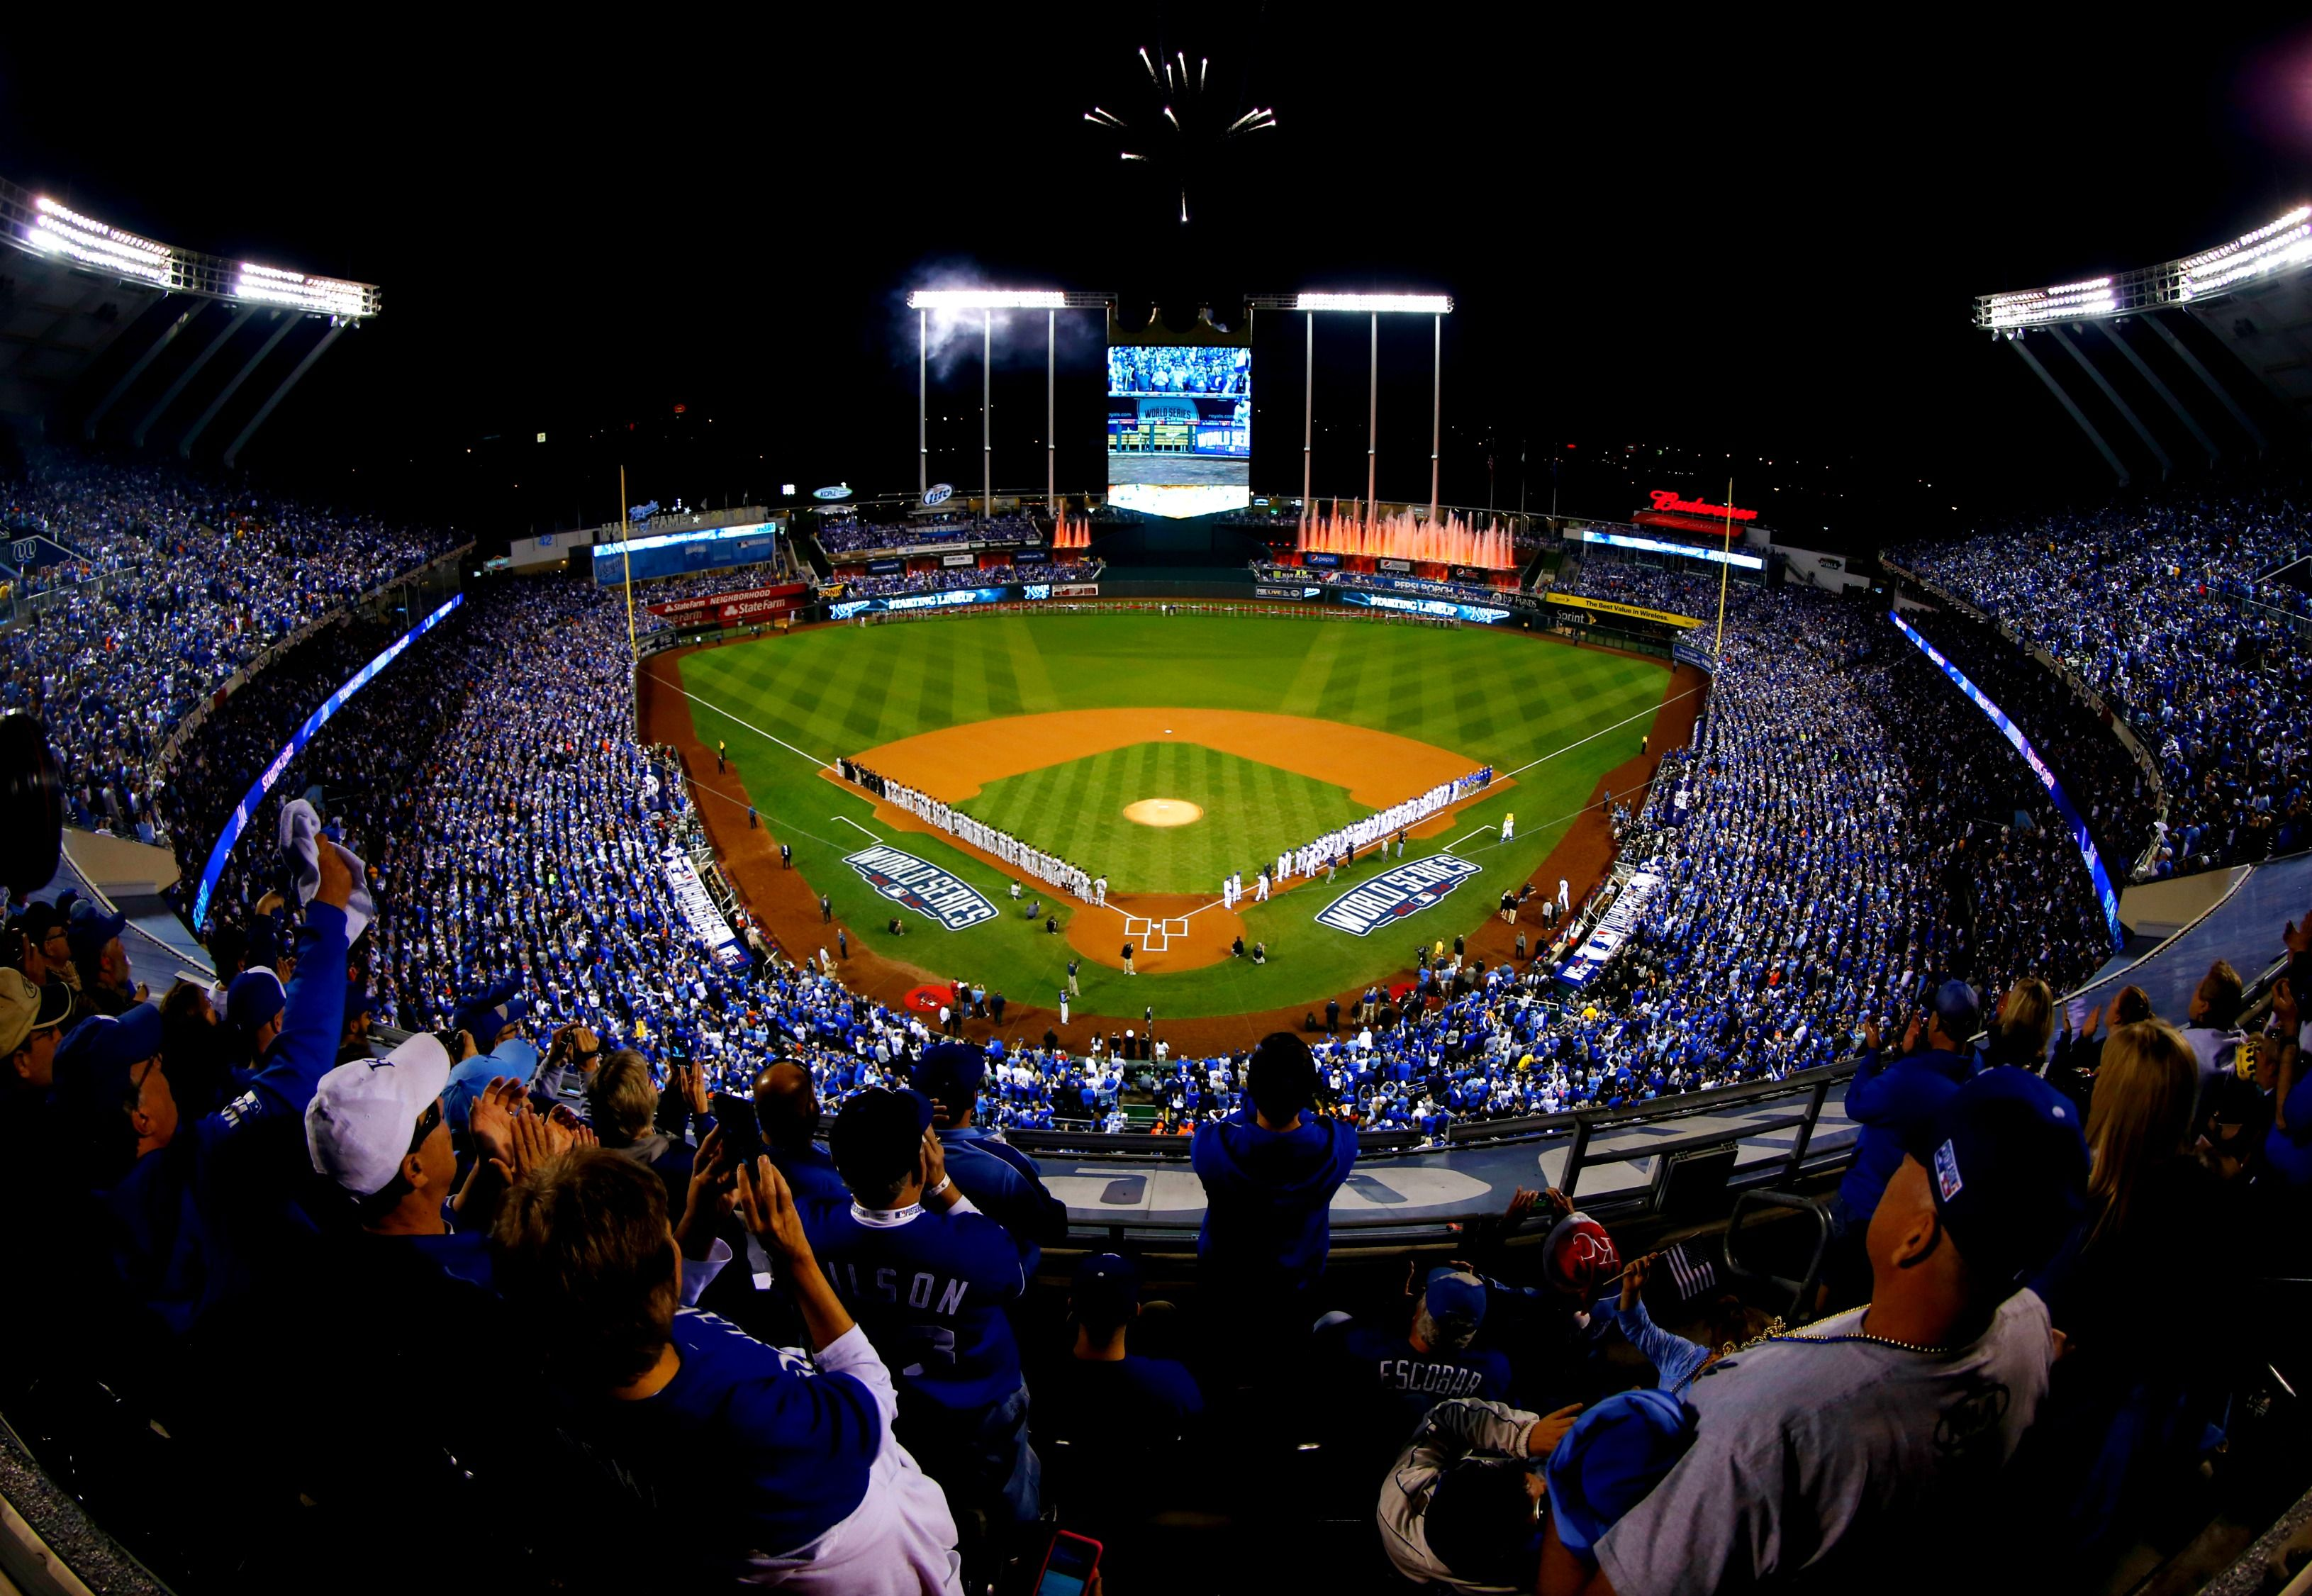 It was a sea of blue last night at Kauffman for Game 1. We